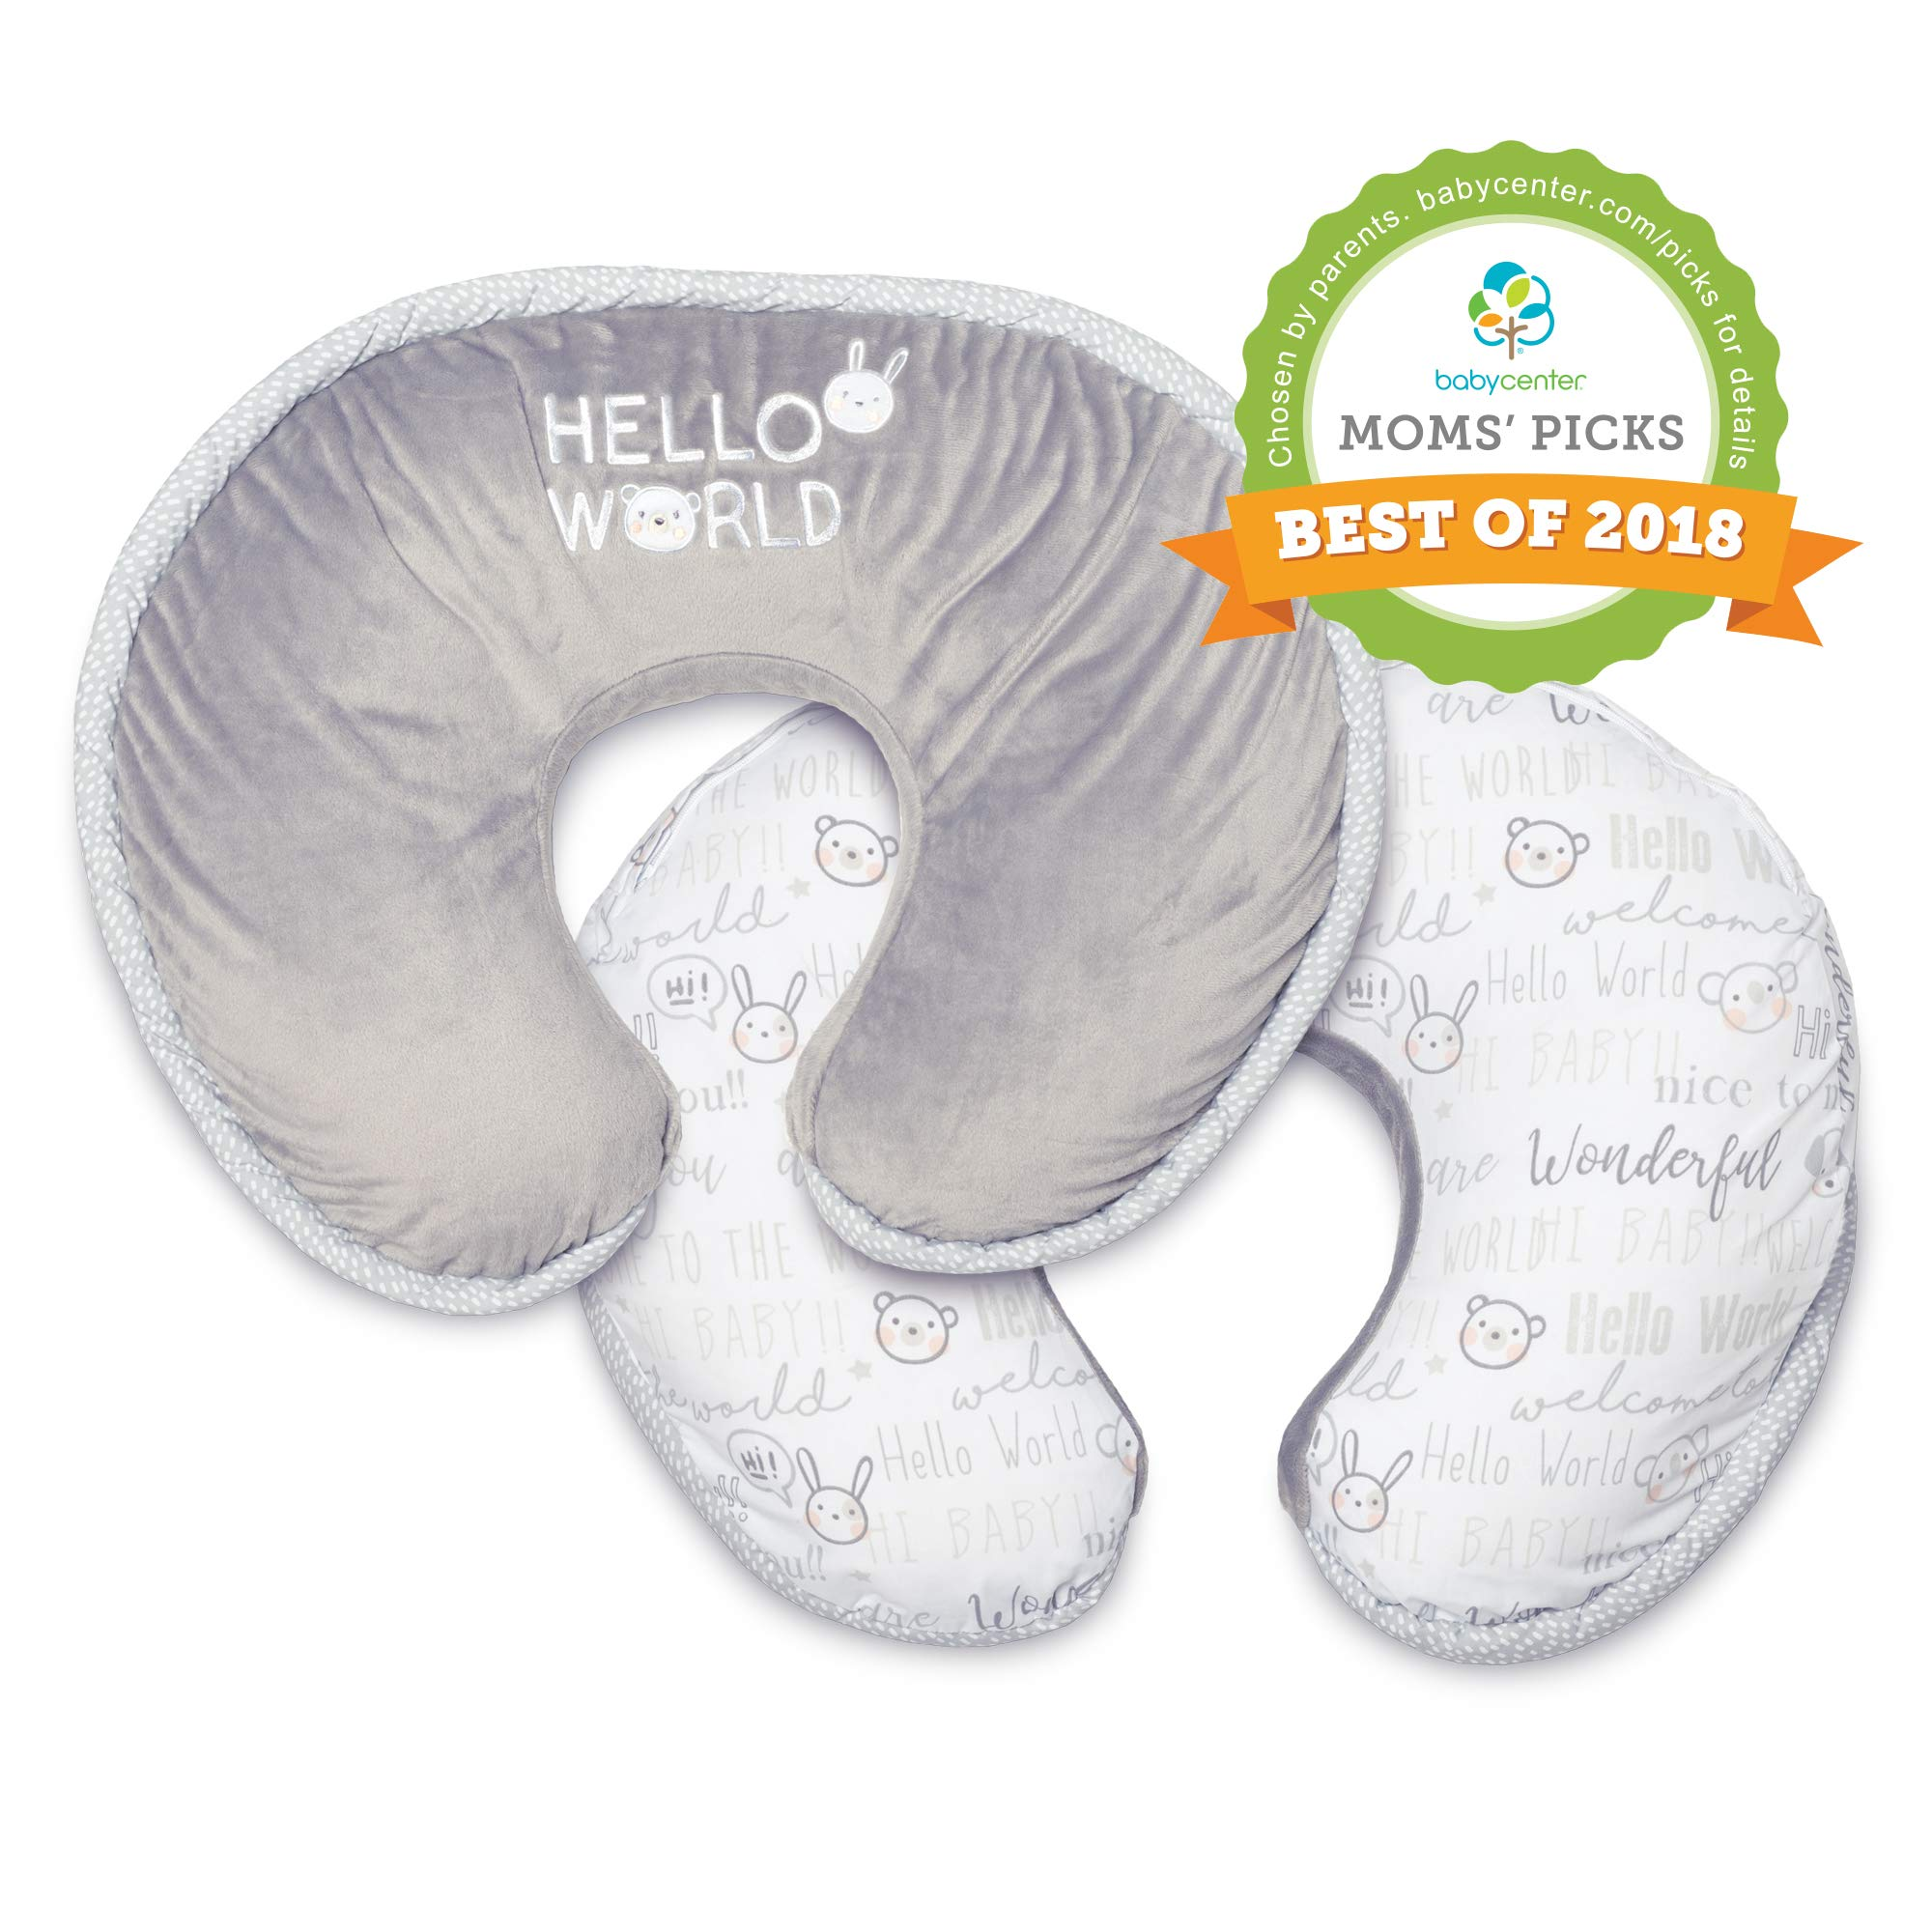 Boppy Luxe Nursing Pillow and Positioner, Hello World, Ultra-soft minky fabric on one side with adorable appliqué and coordinating piping by Boppy